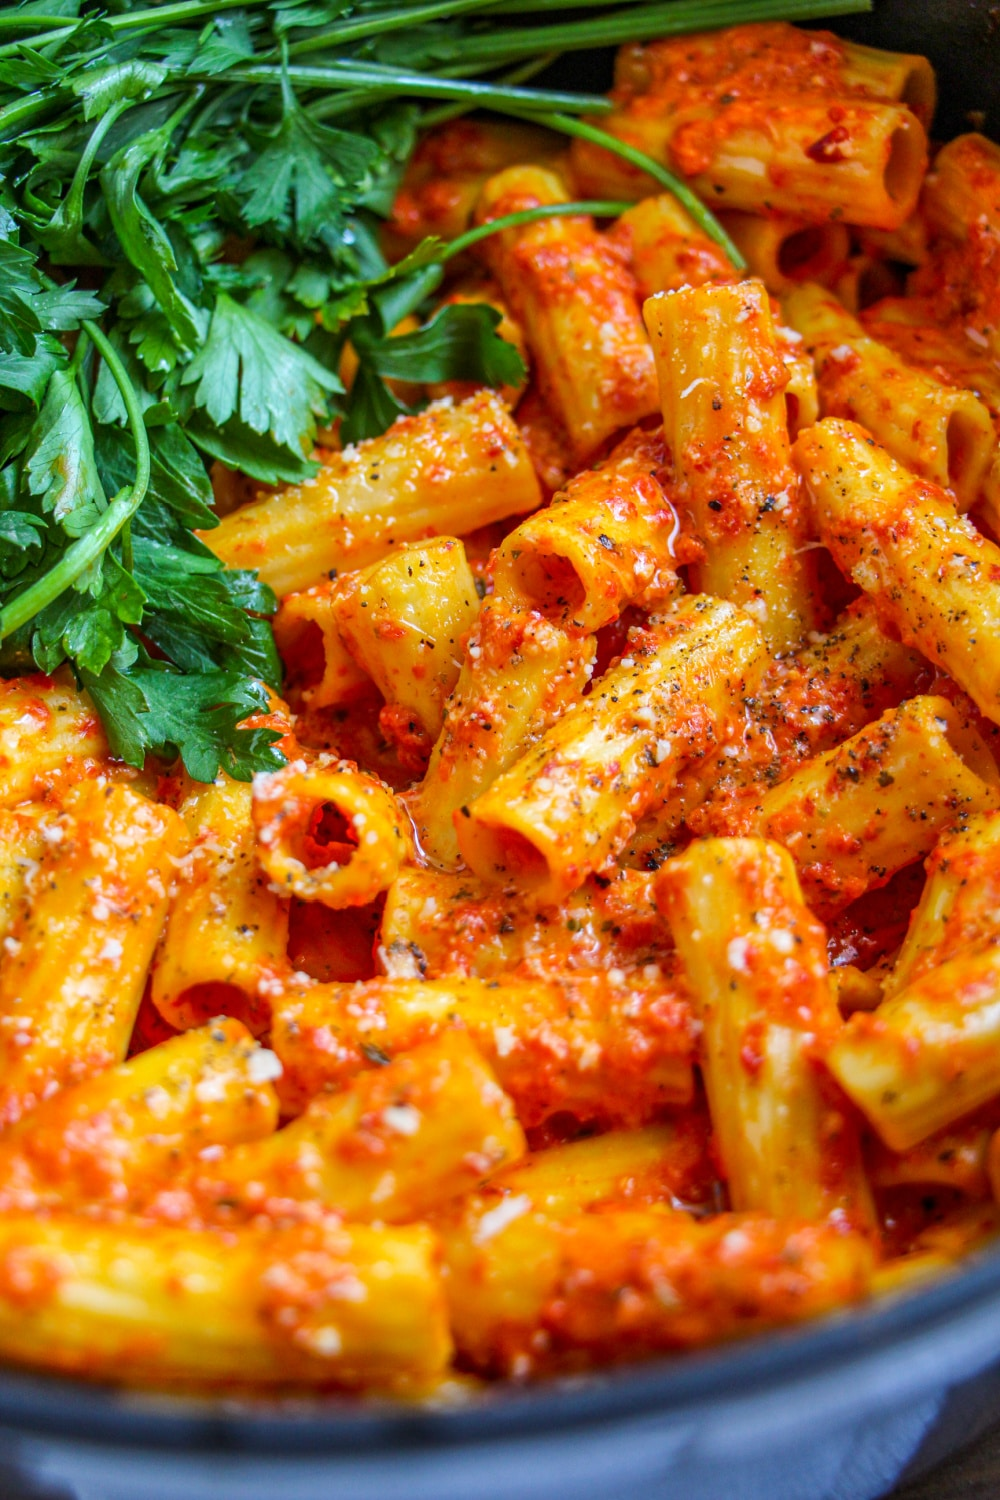 Close up of pasta in red pepper sauce garnished with parsley.